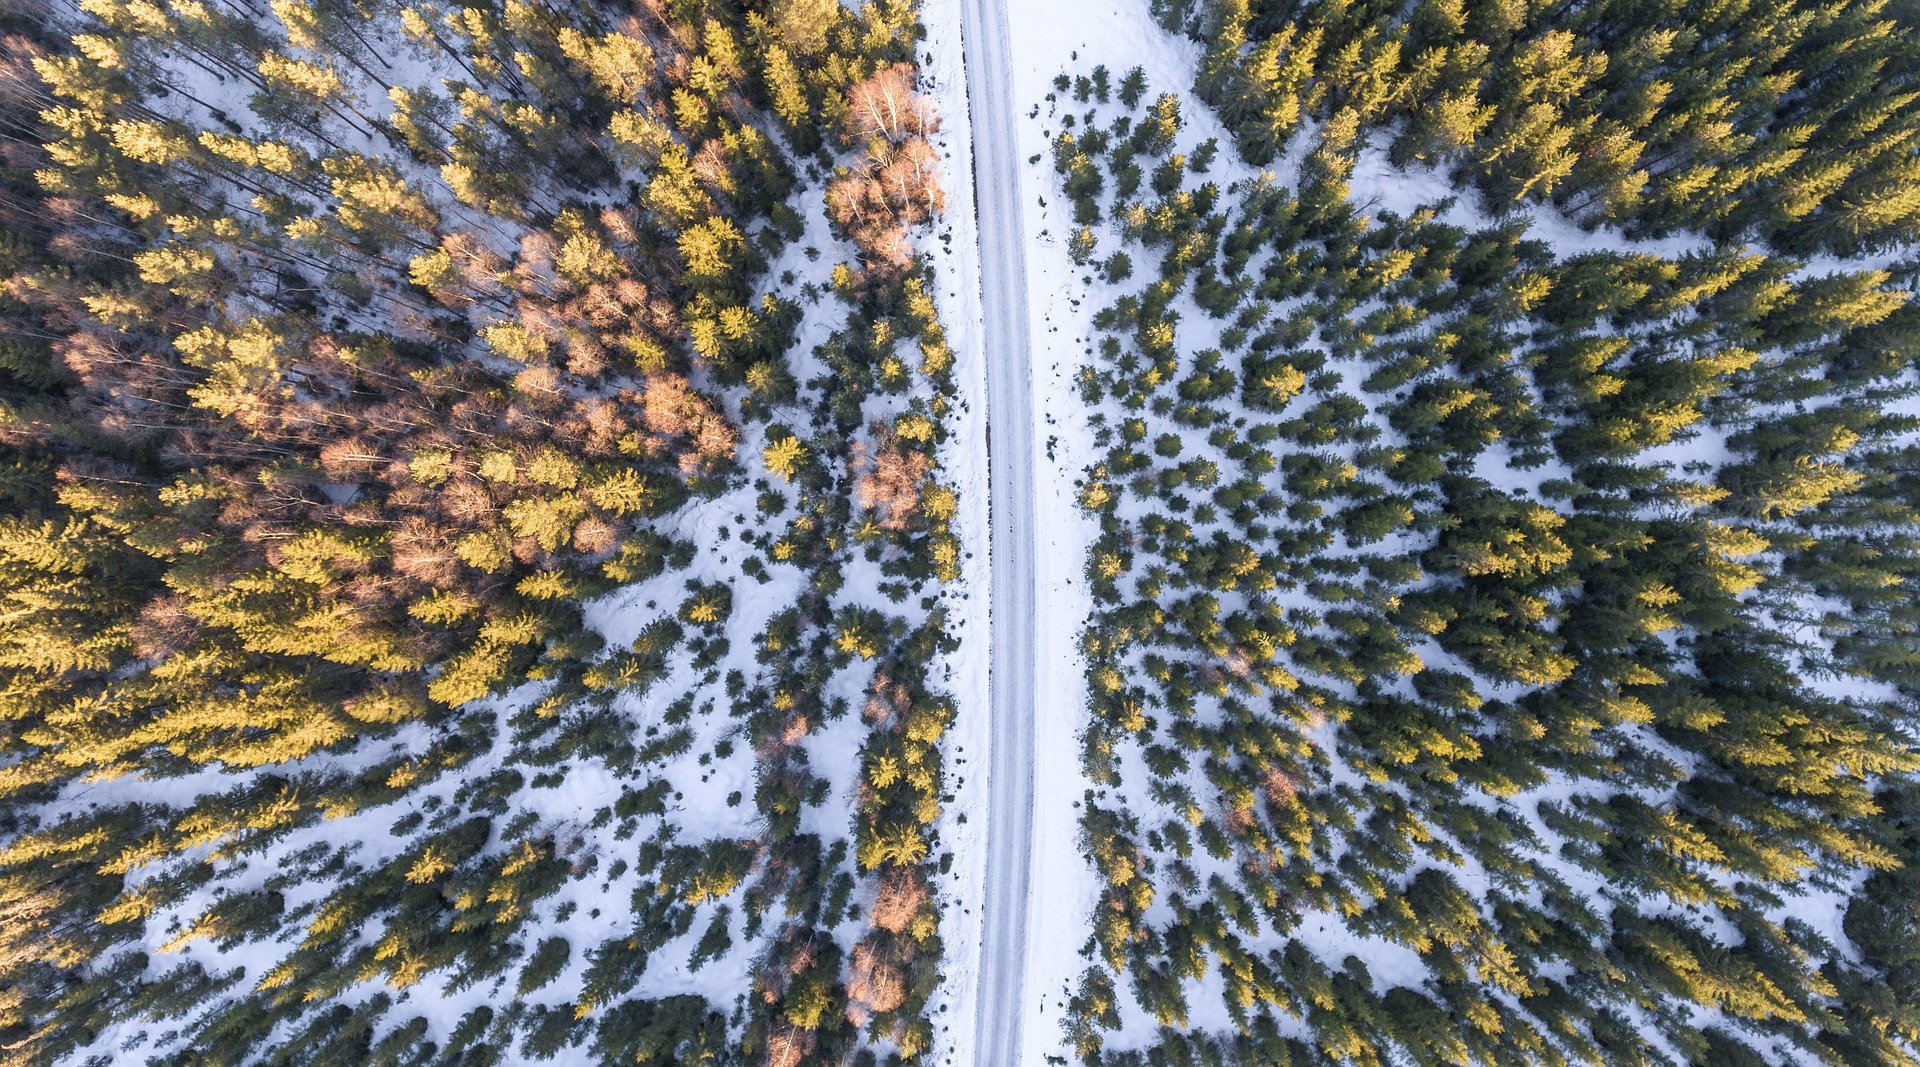 Drone footage of pine trees in snow